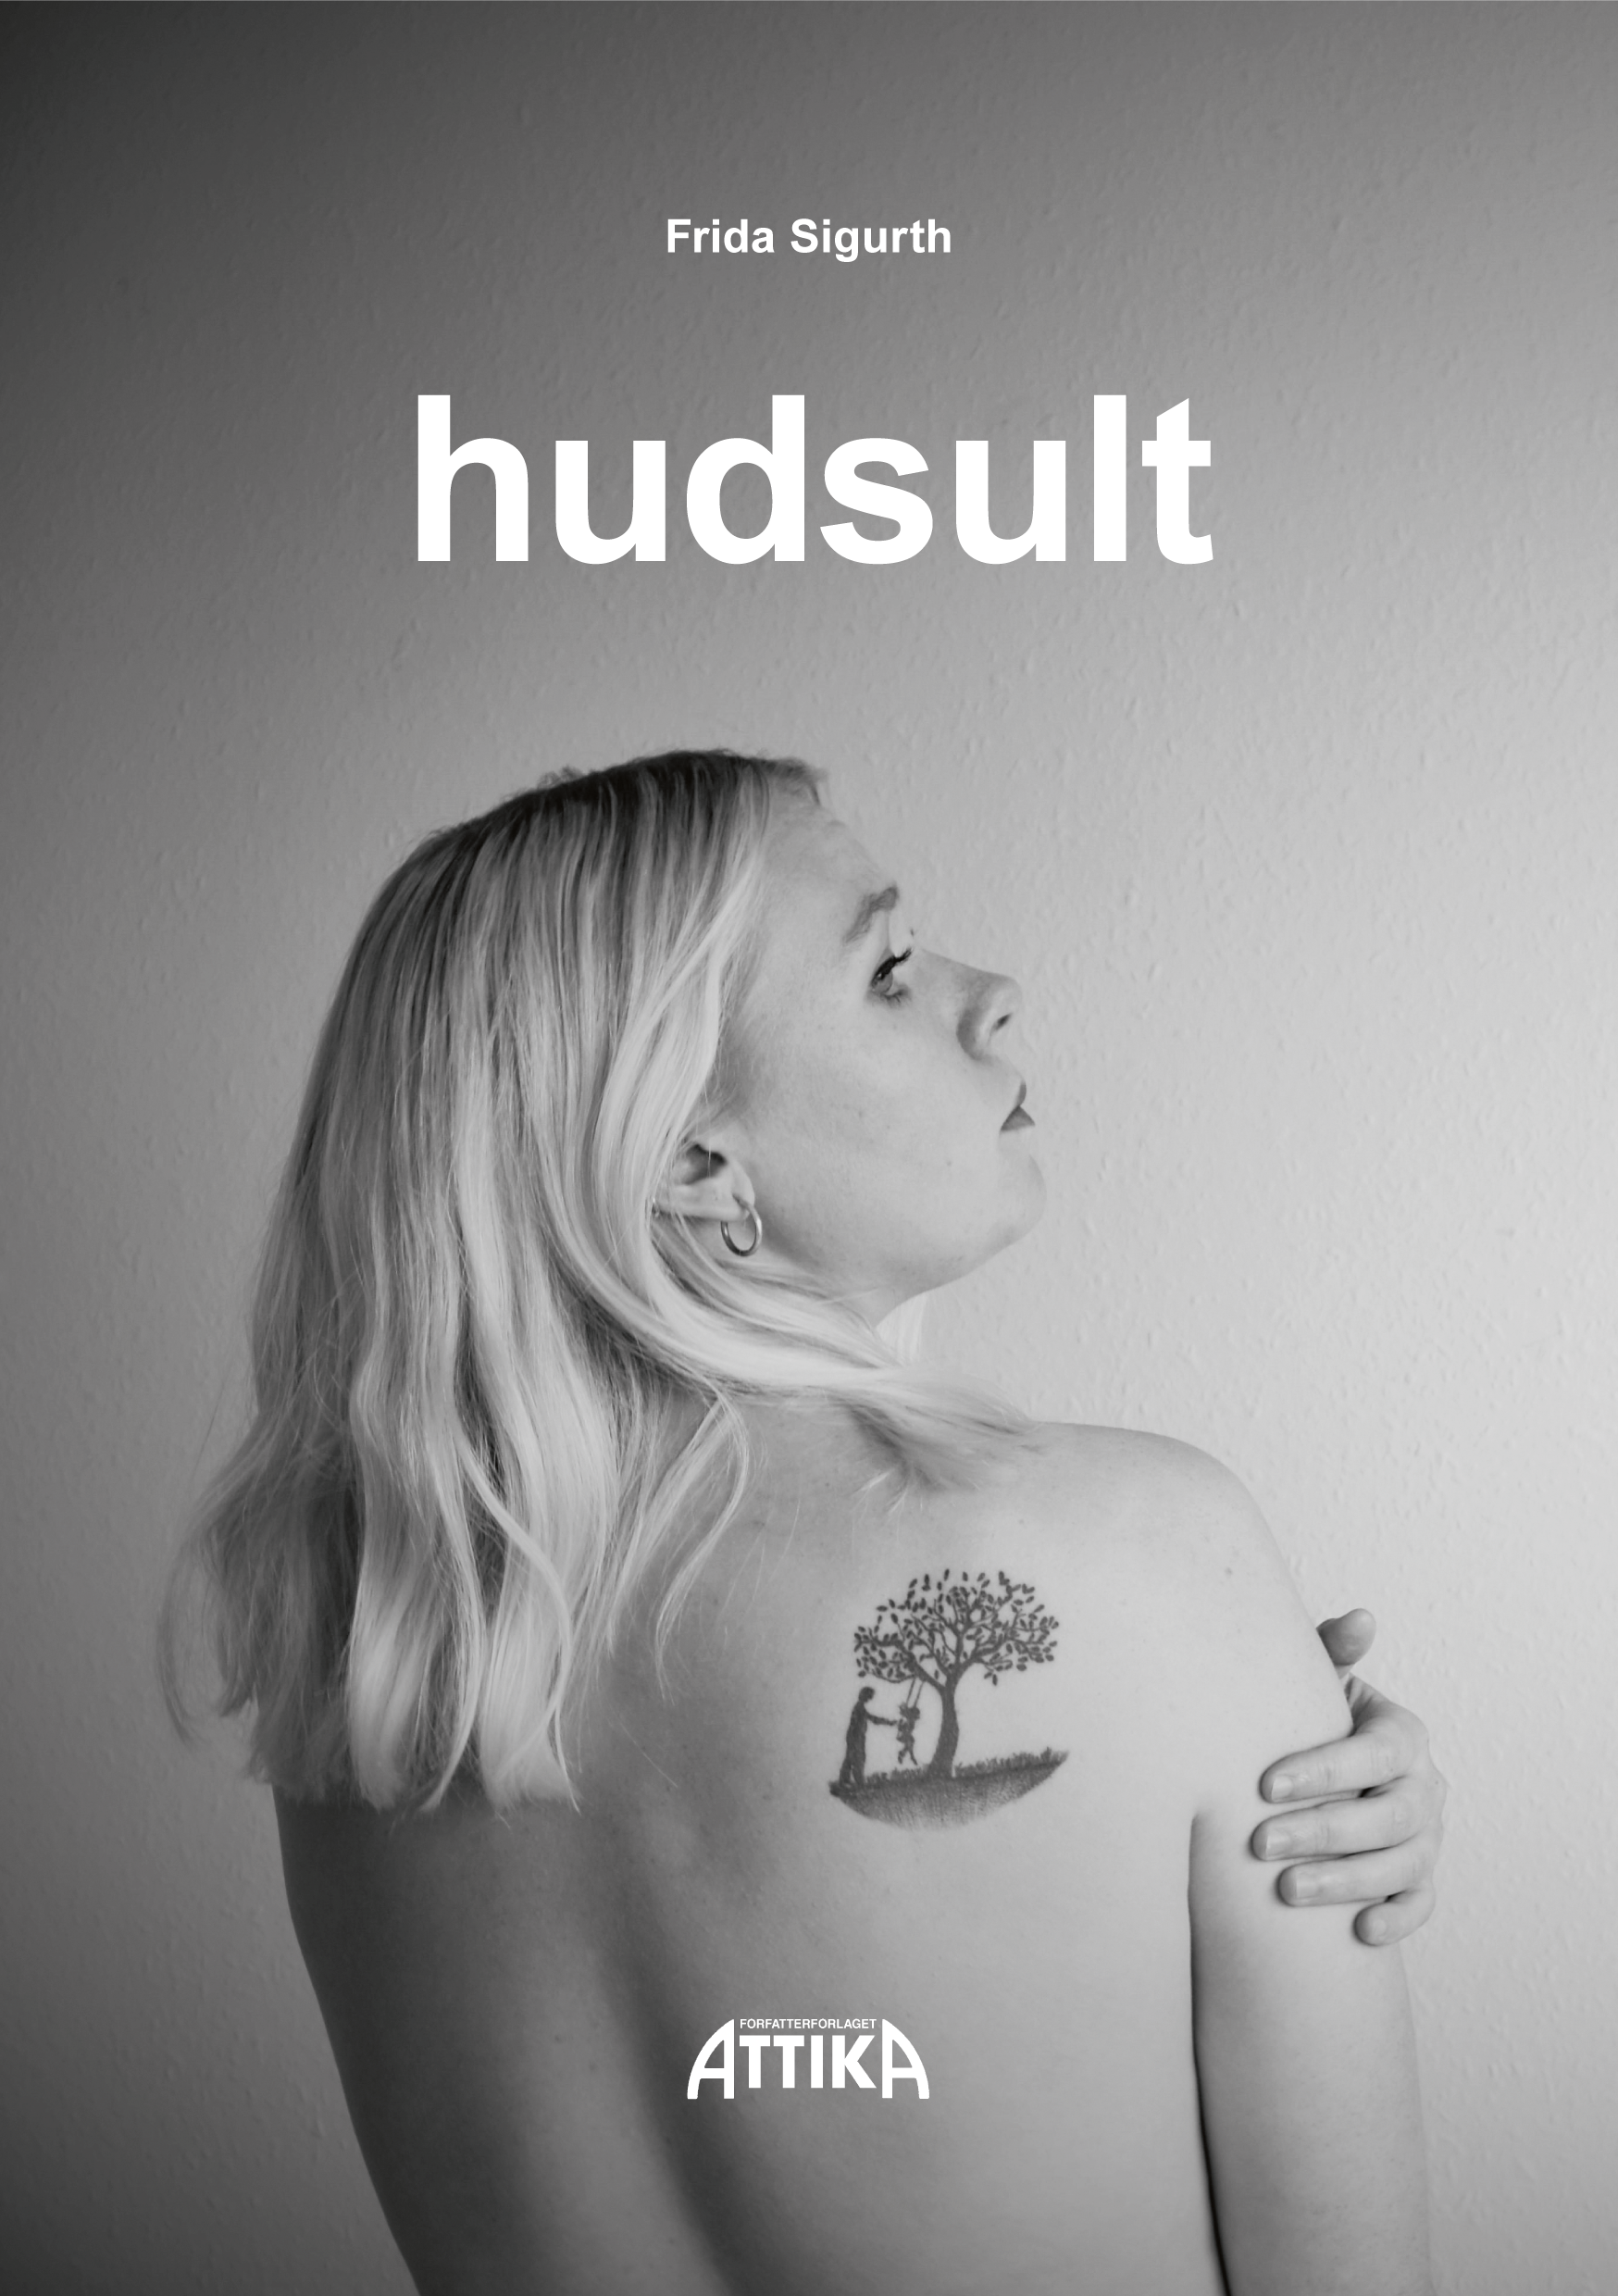 Frida Sigurth: hudsult